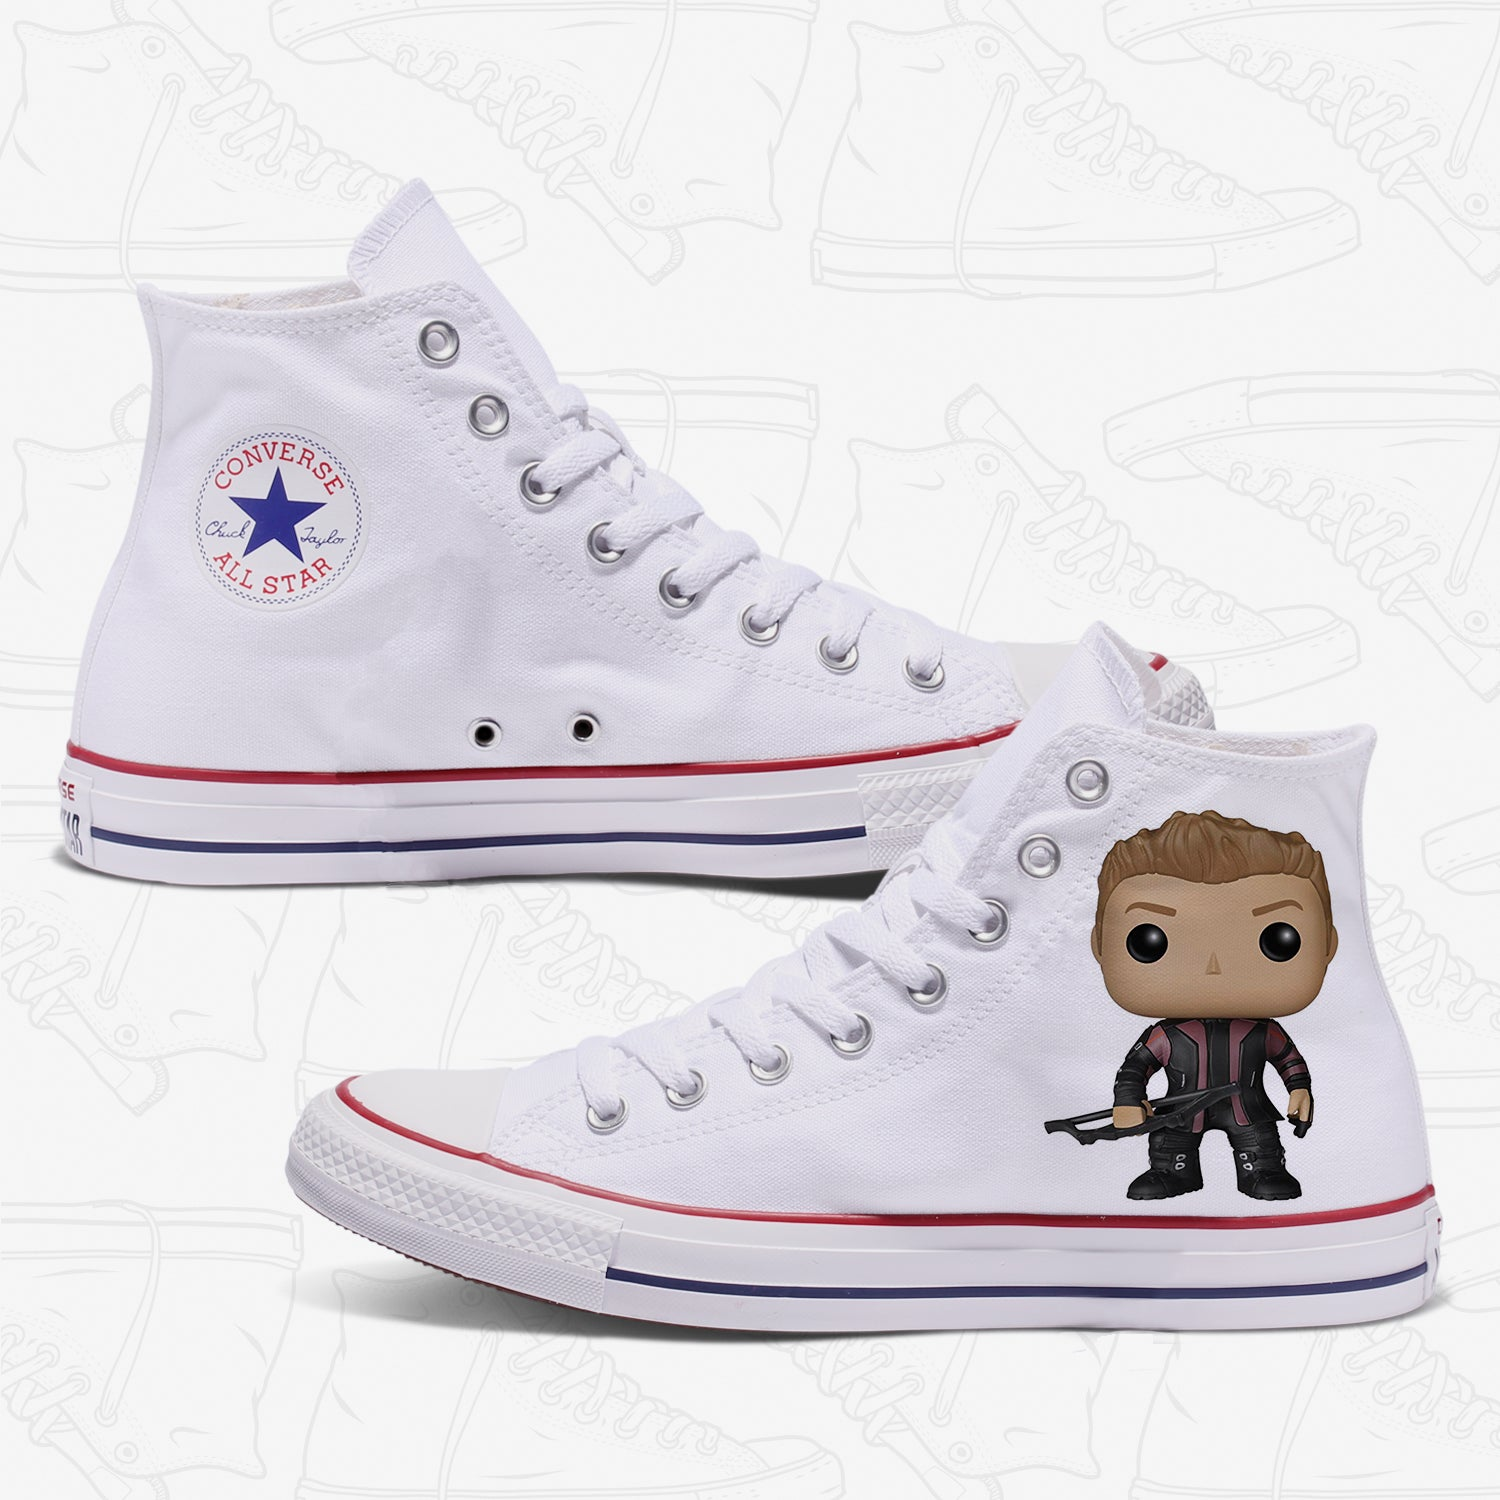 Hawkeye Adult Converse Shoes